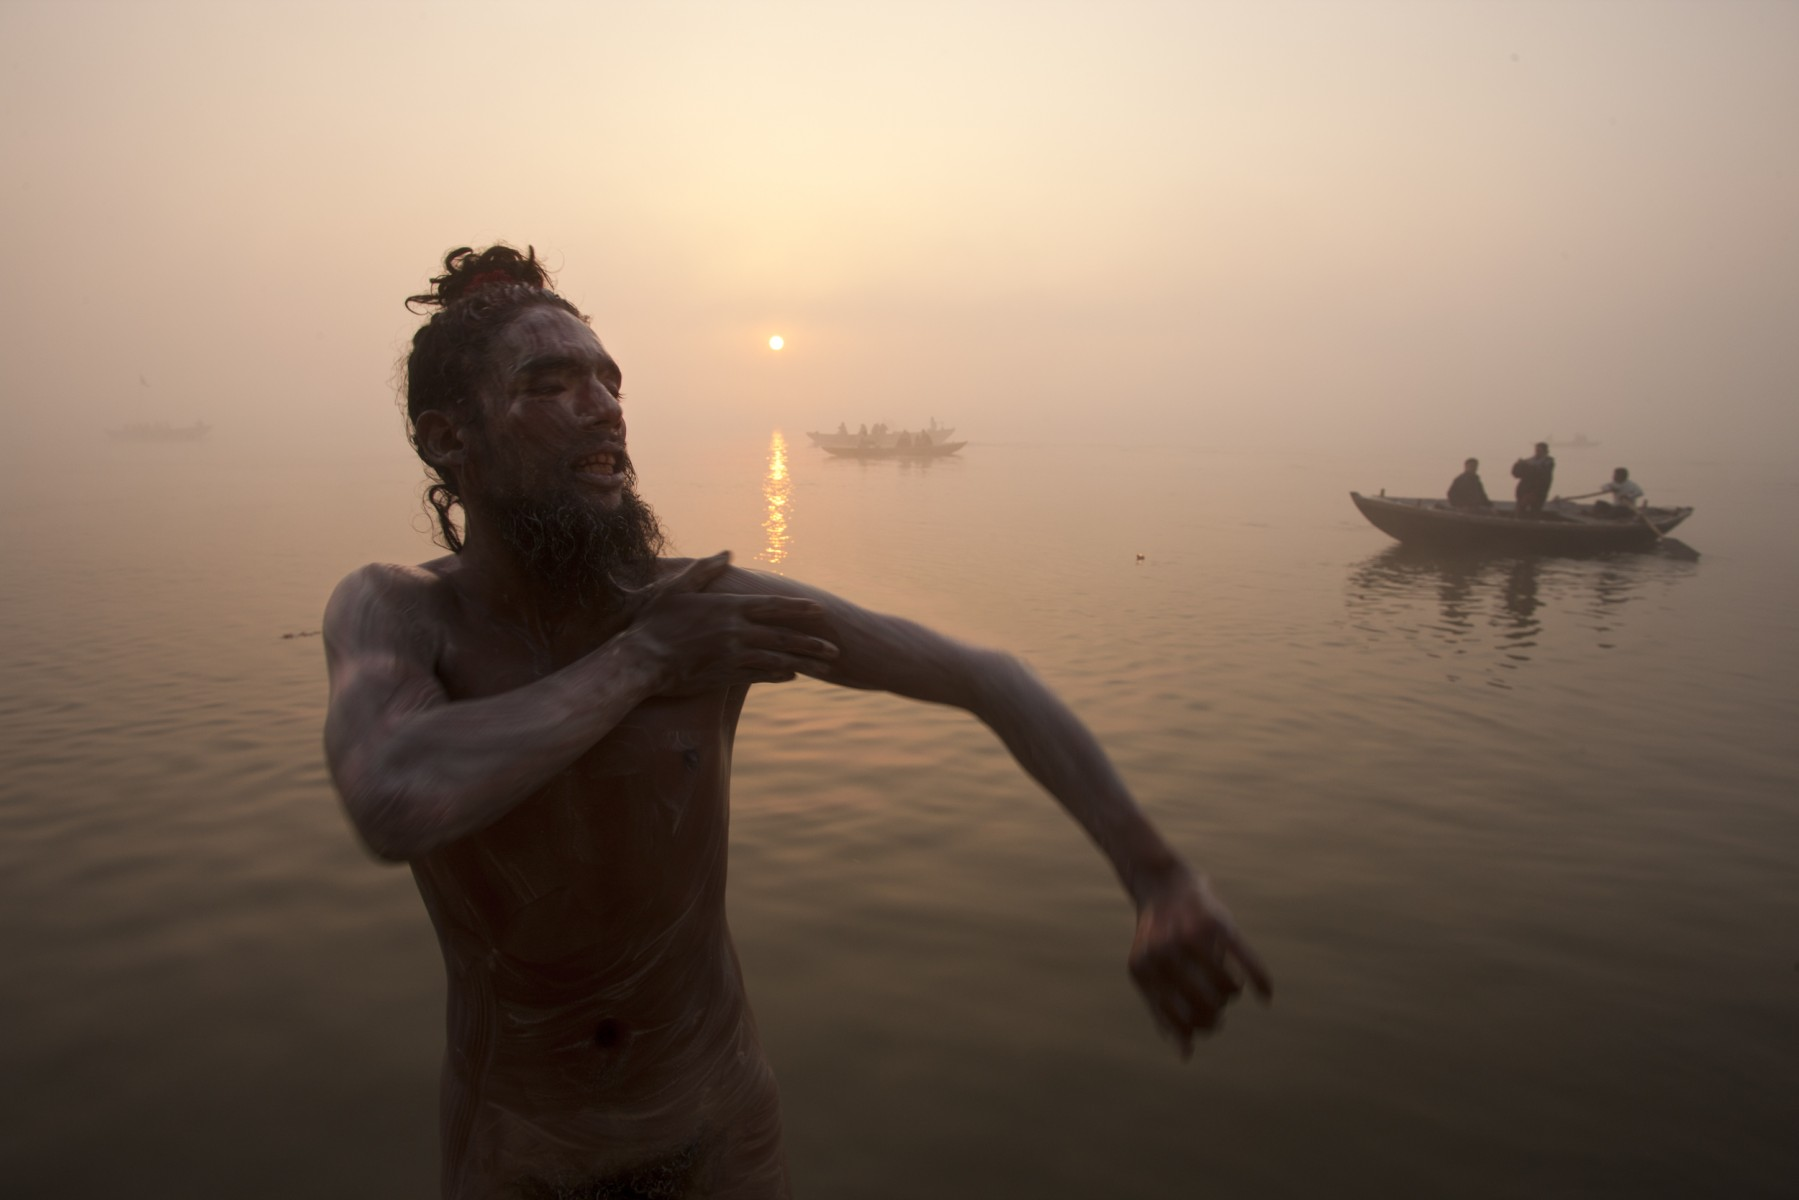 Sunrise over the Ganges at Varanasi